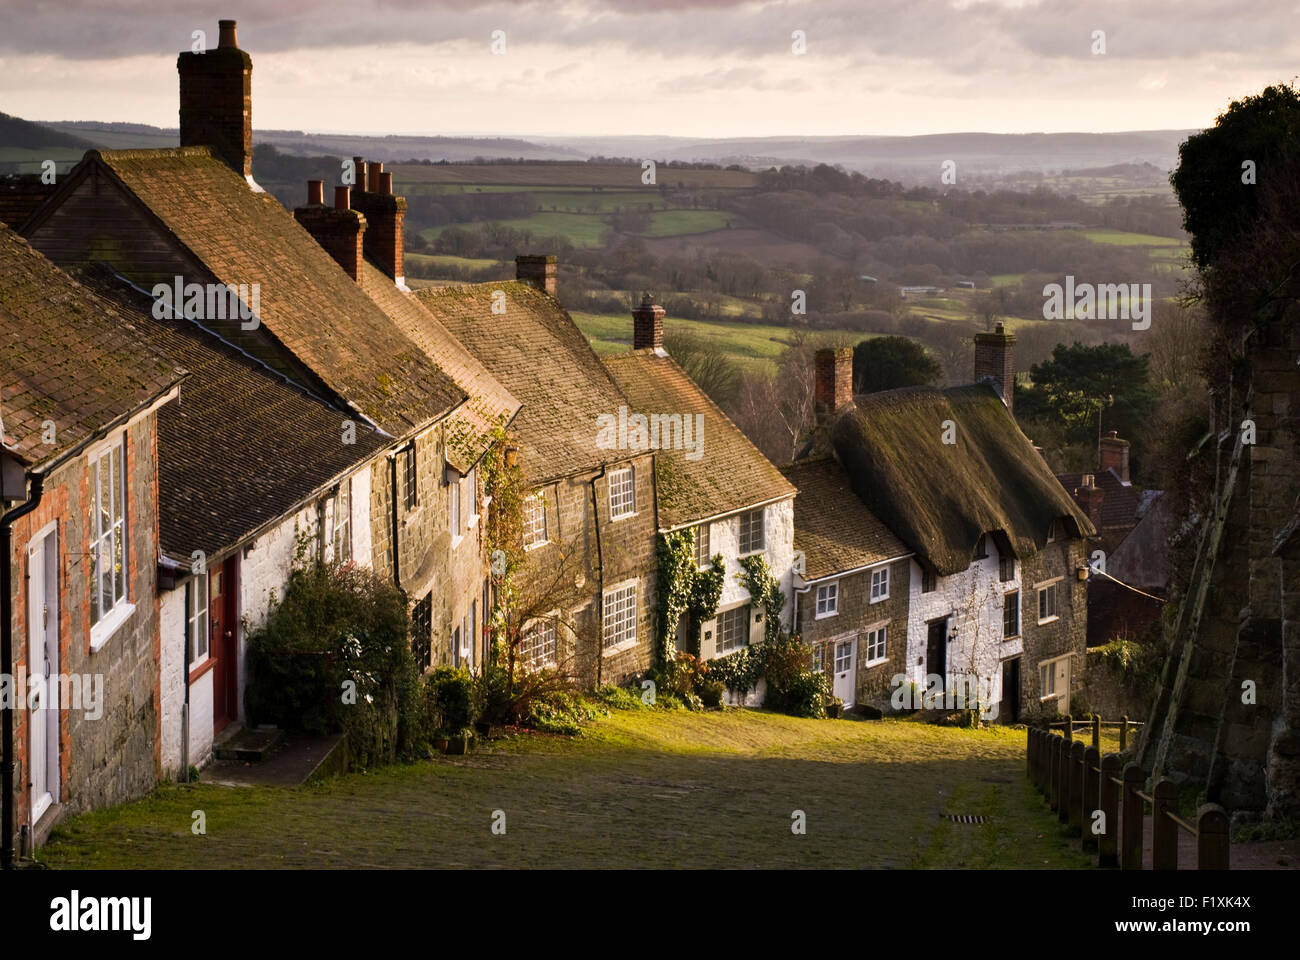 Looking down Gold Hill in the North Dorset town of Shaftesbury, famed for being the setting for a Hovis bread advert. - Stock Image